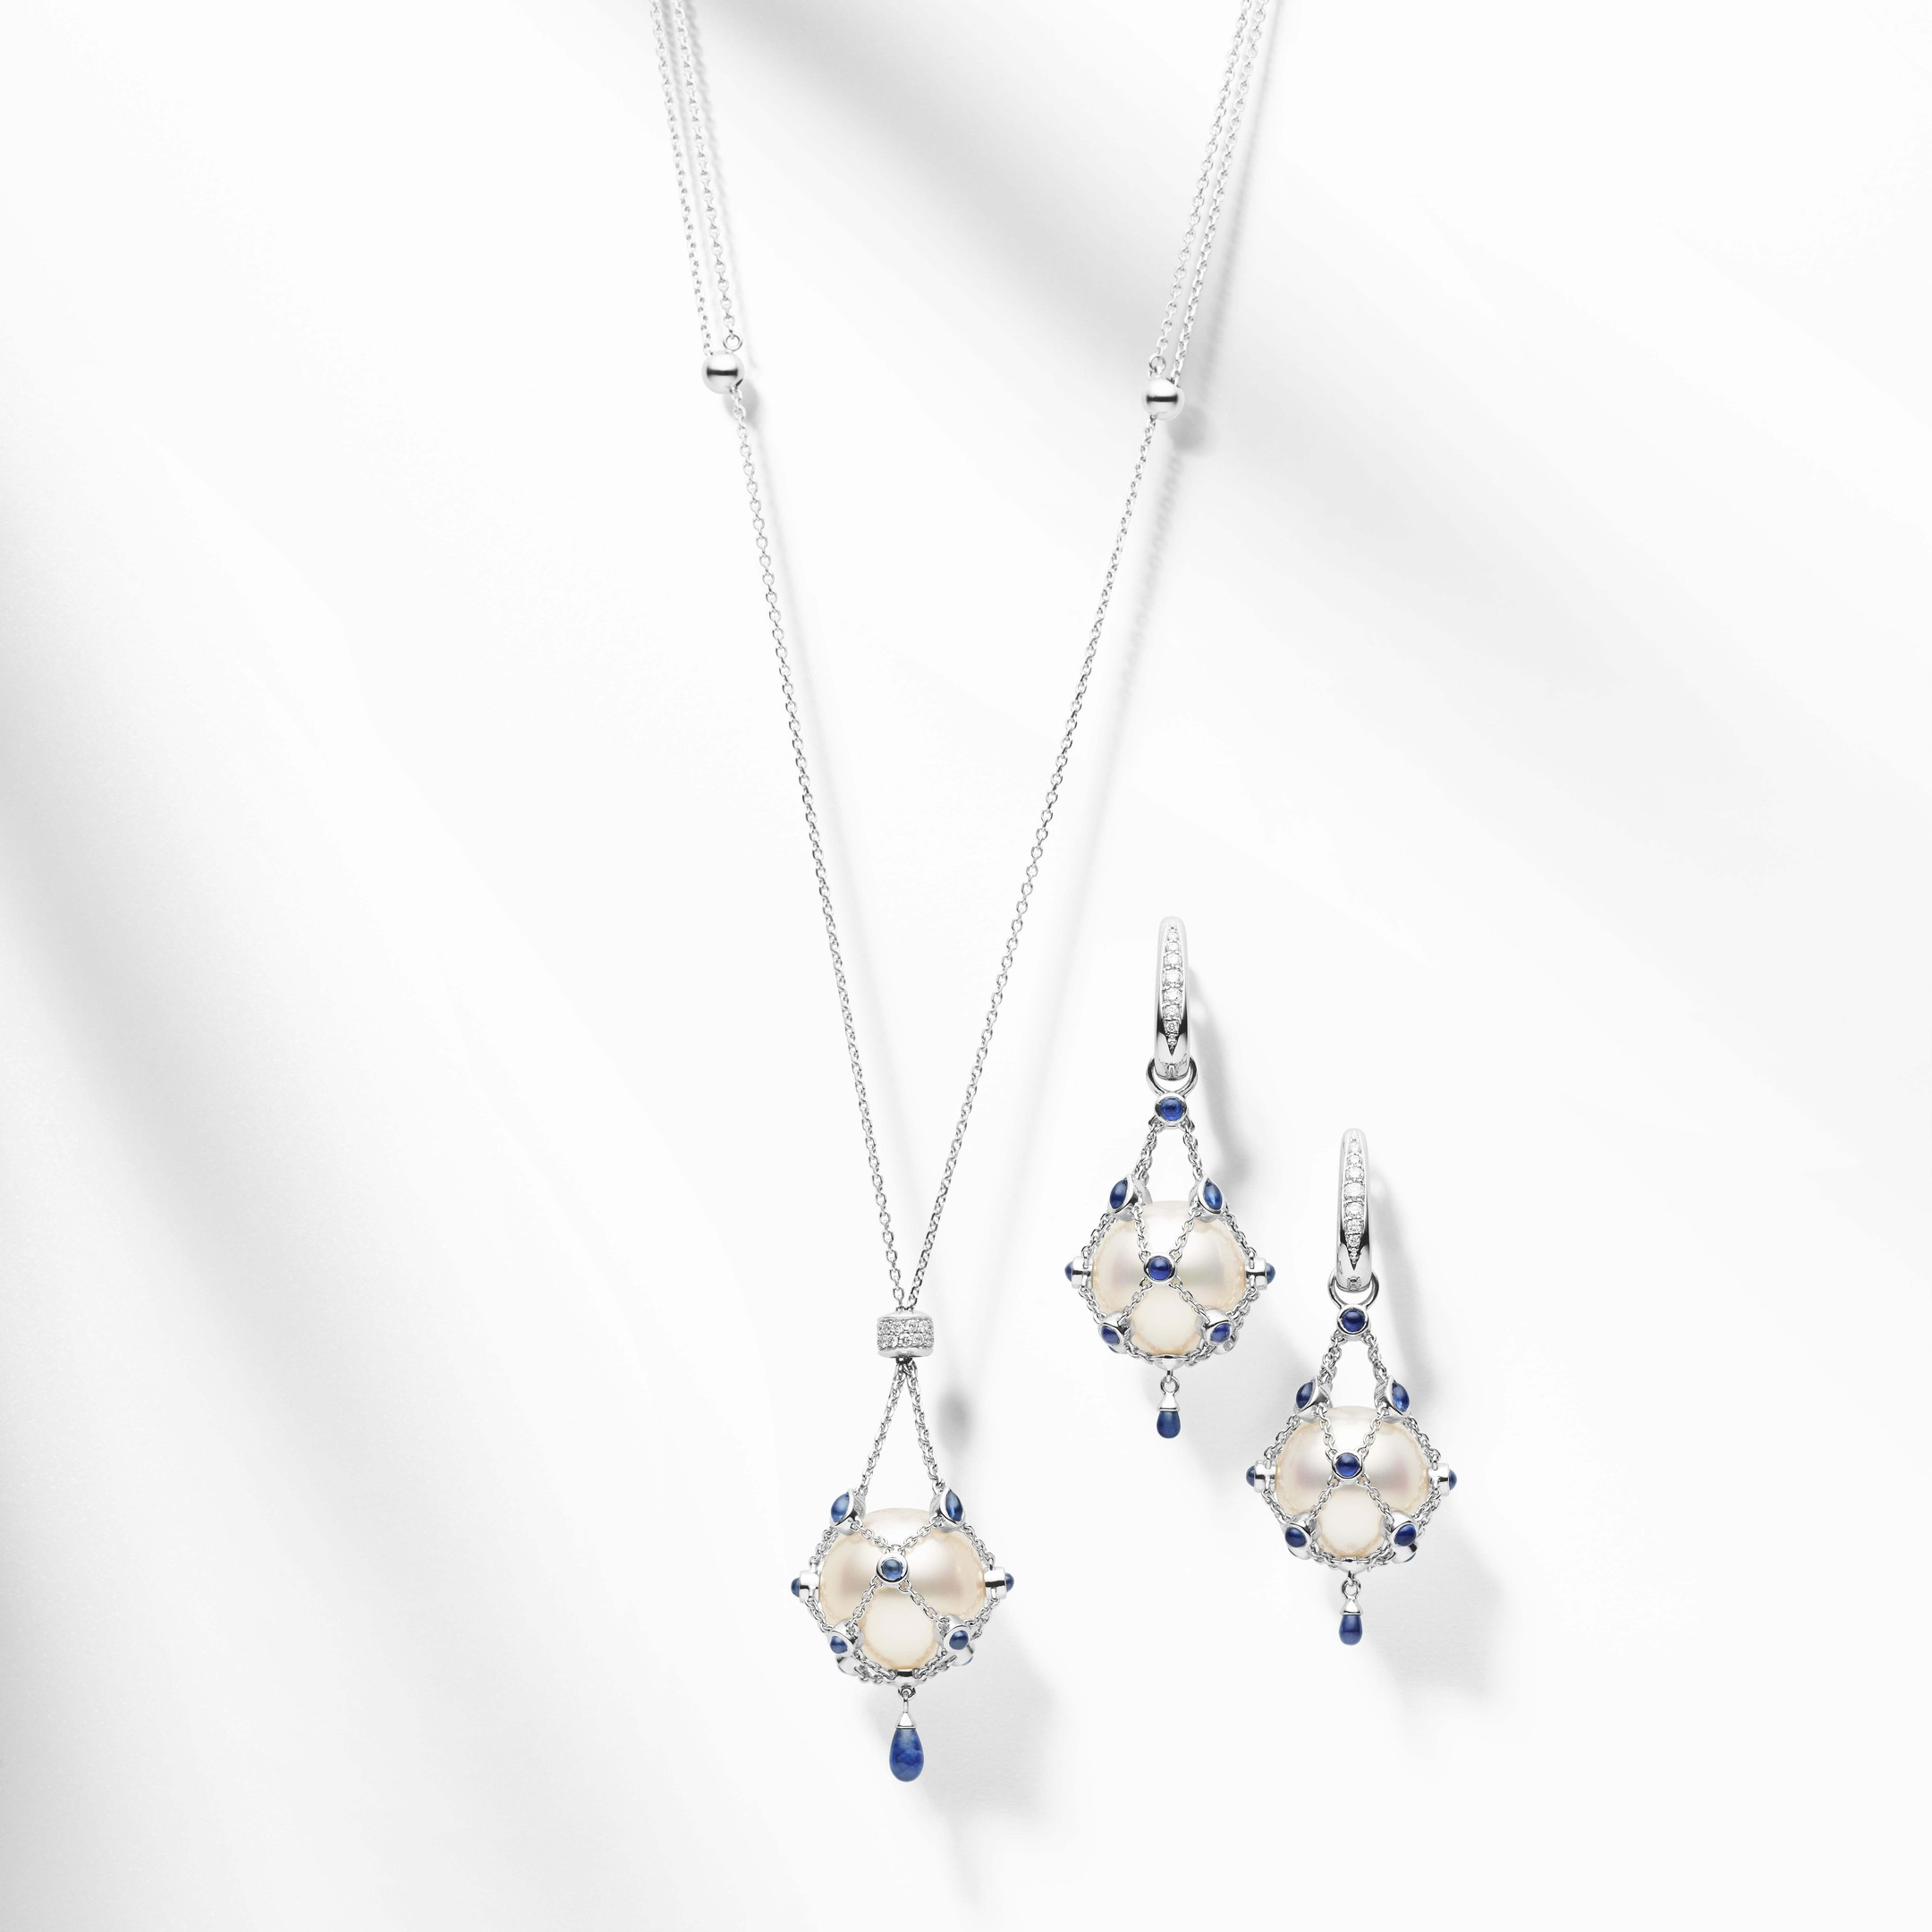 Paspaley Lavalier bleu Australian South Sea pearl necklace with sapphires and white diamonds in white gold, and Lavalier bleu South Sea pearl earrings with sapphires and white diamonds in white gold.